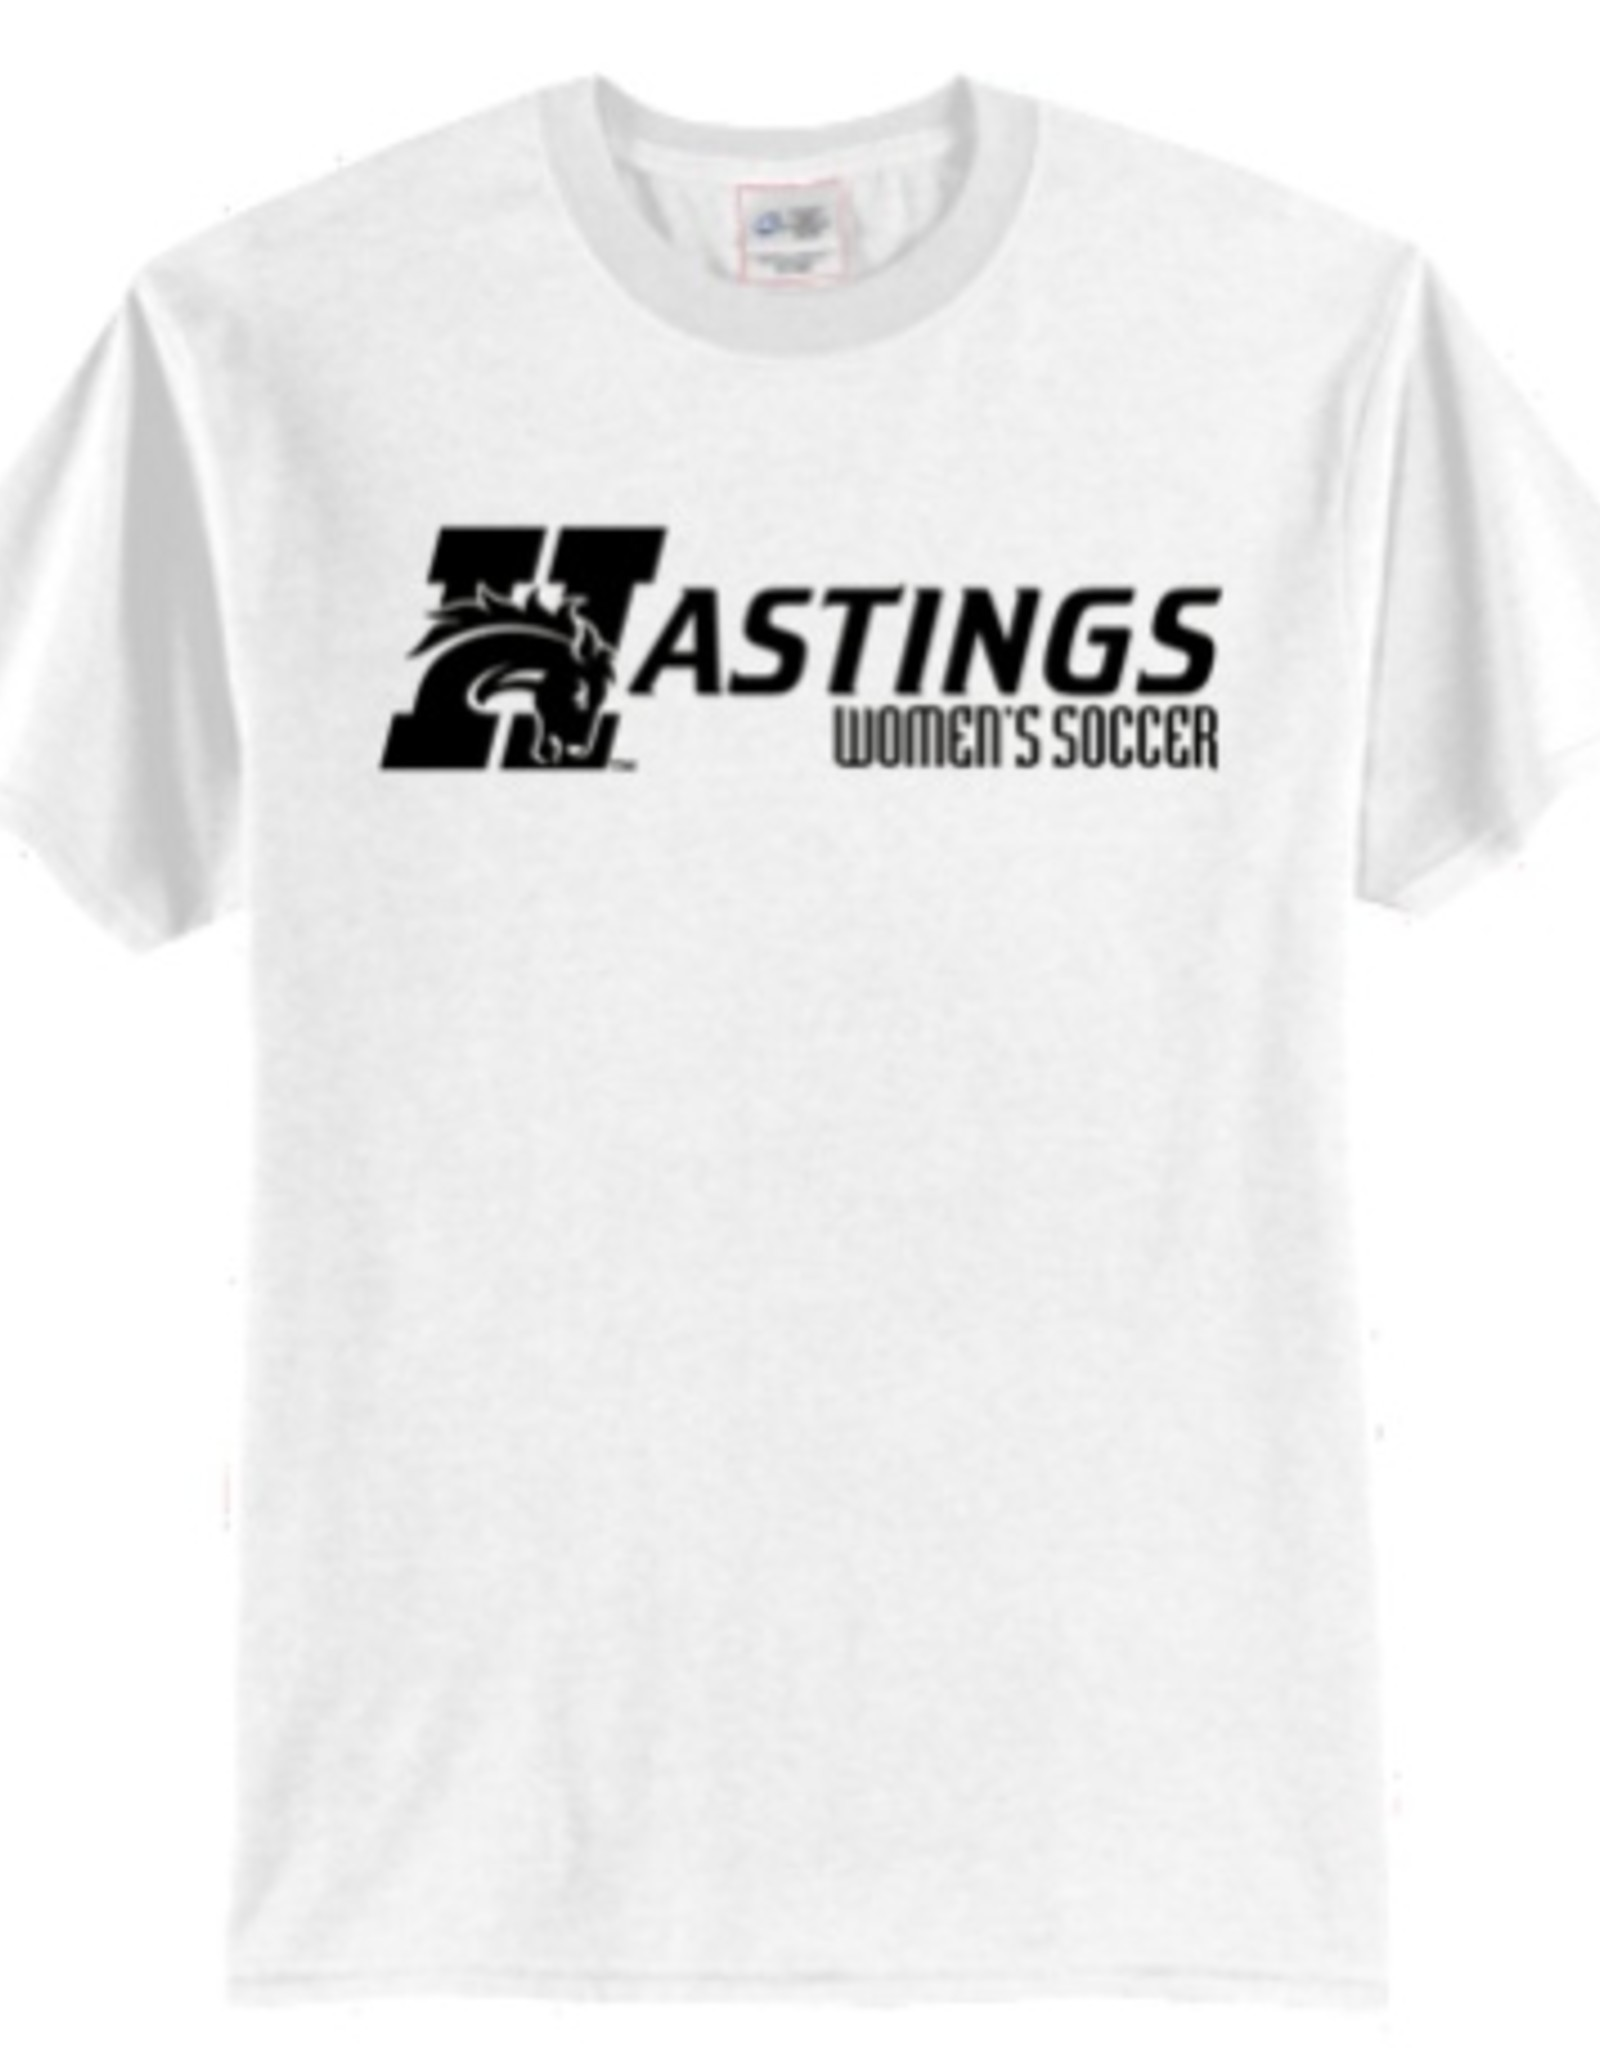 Hastings Women's Soccer Tee